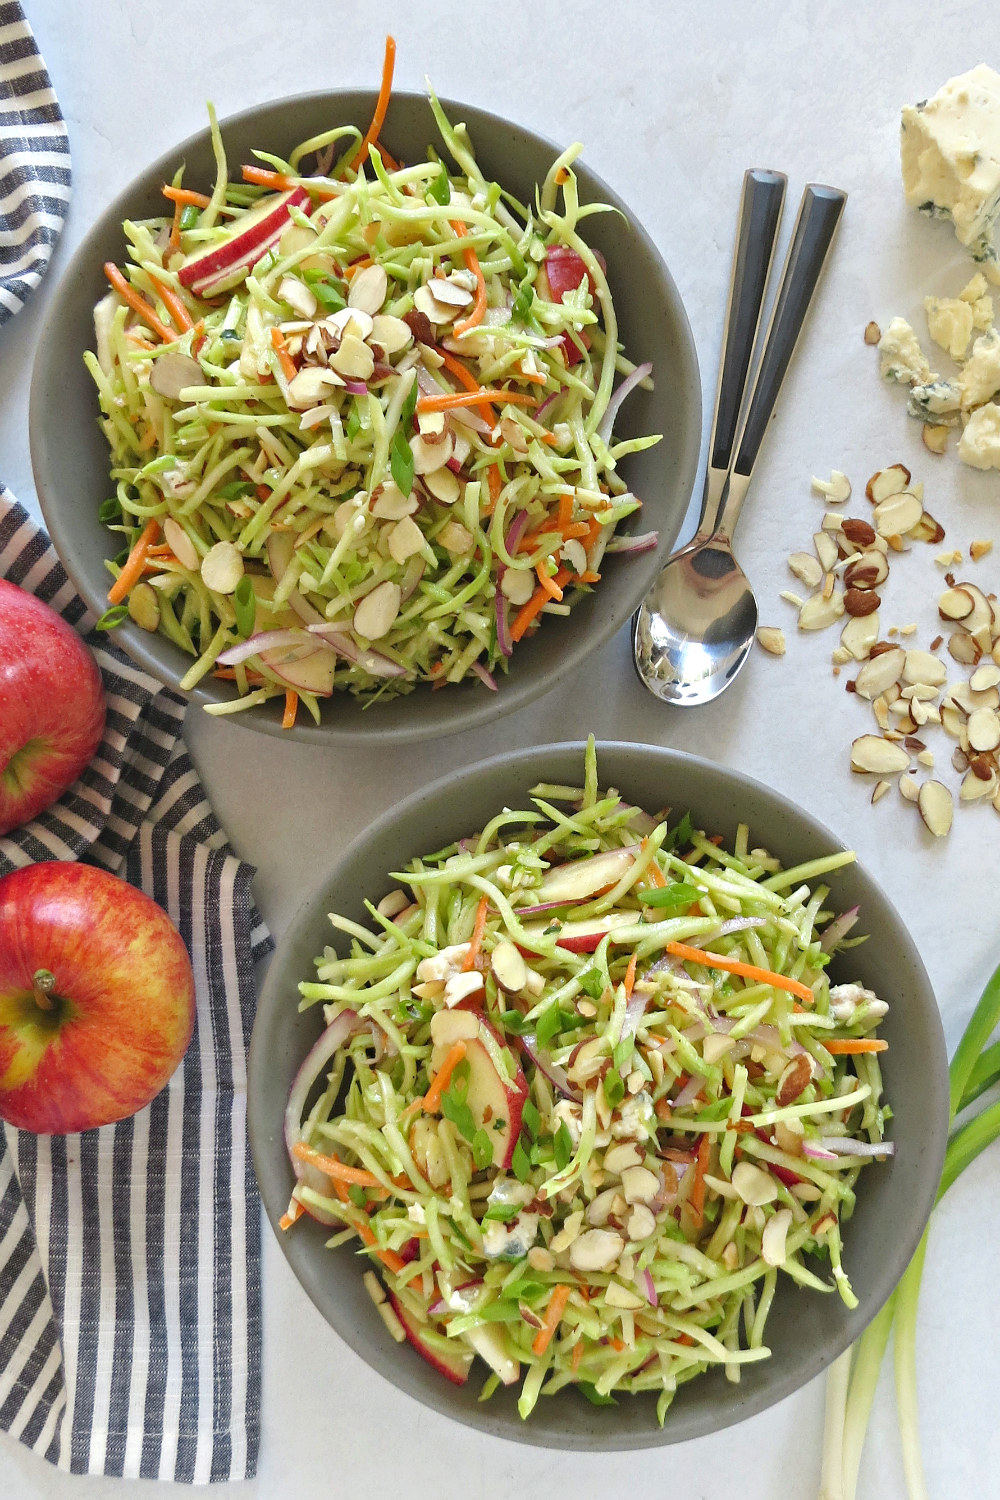 Broccoli Slaw Recipe with Apples and Blue Cheese